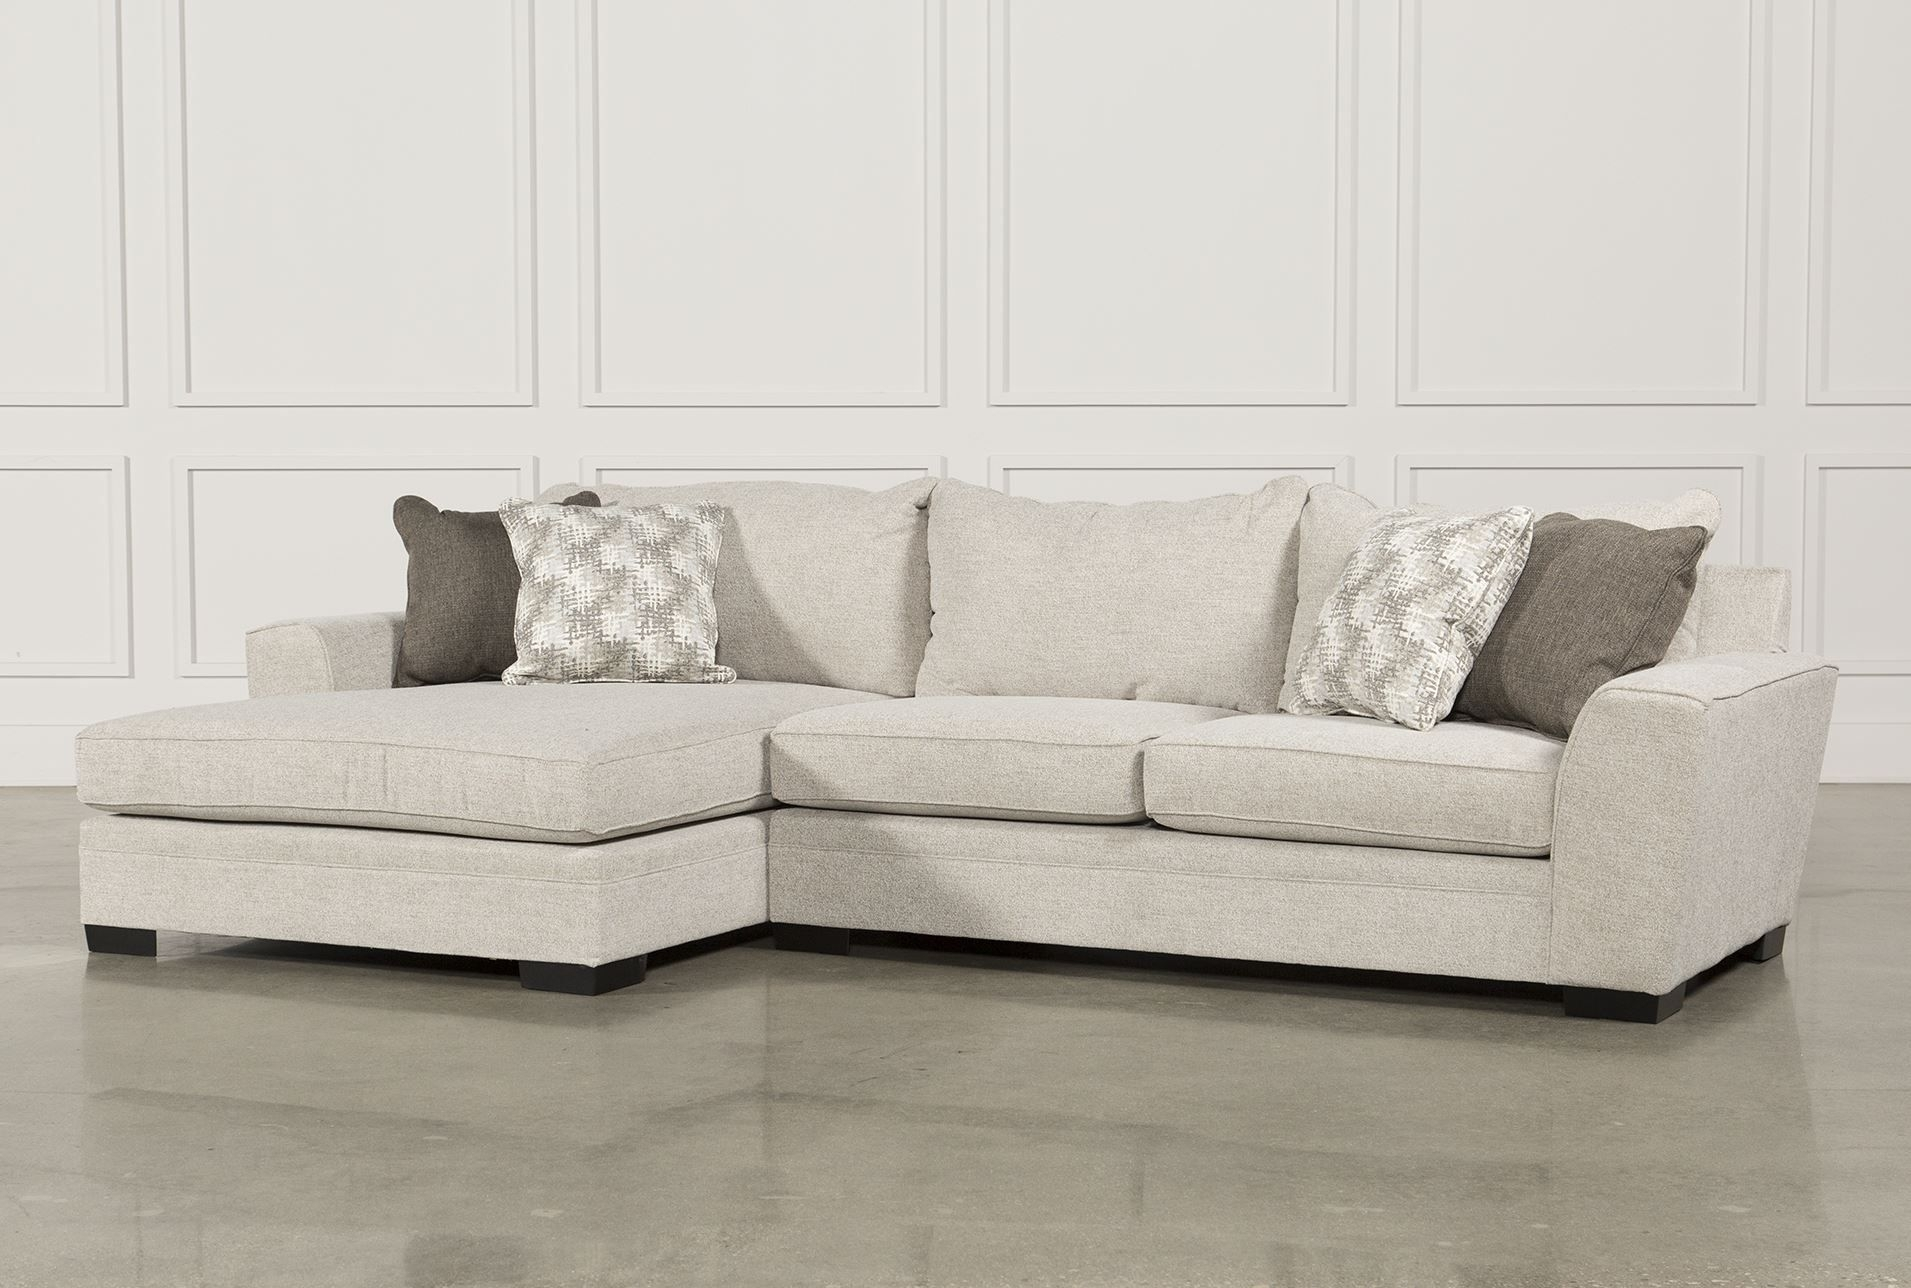 Delano 2 Piece Sectional W/laf Oversized Chaise | Living Room throughout Delano 2 Piece Sectionals With Laf Oversized Chaise (Image 12 of 30)